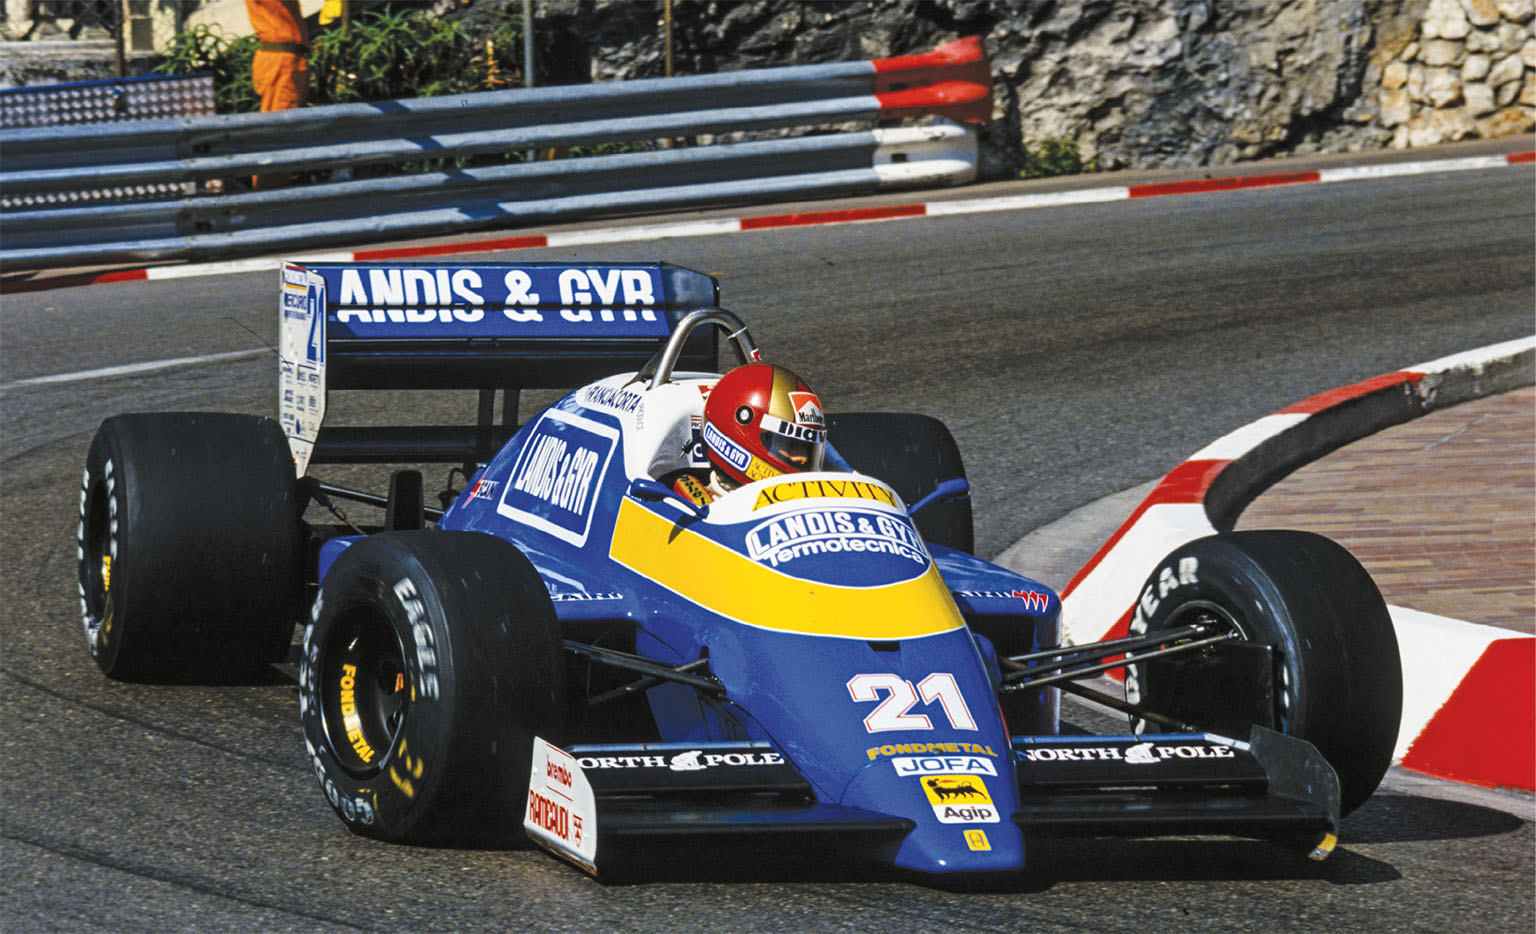 His first F1 season came with Osella in 1987